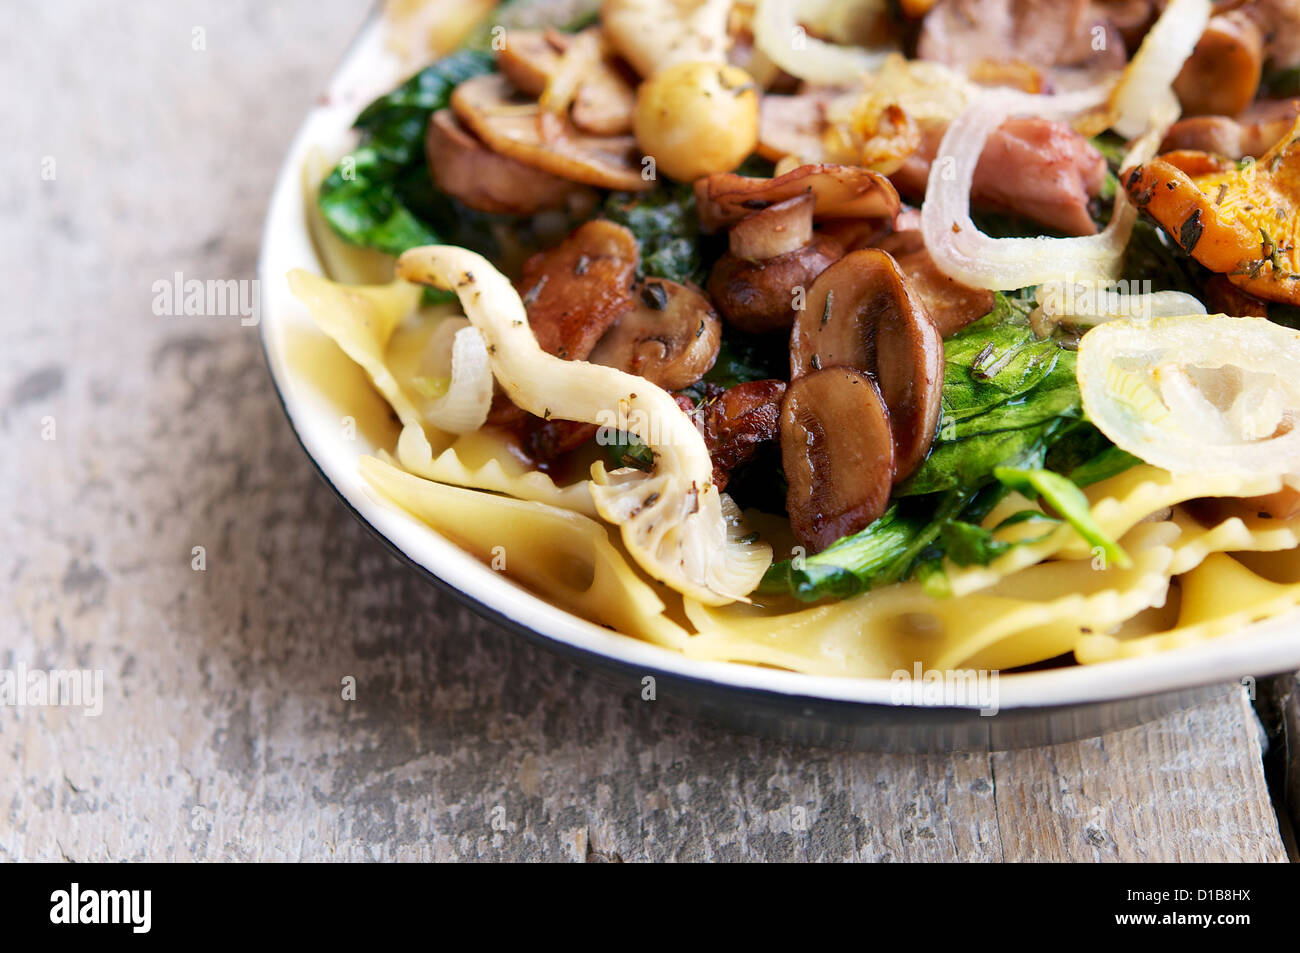 Vegetarian meal with mixed mushrooms, onion and fresh spinach on pasta. Stock Photo